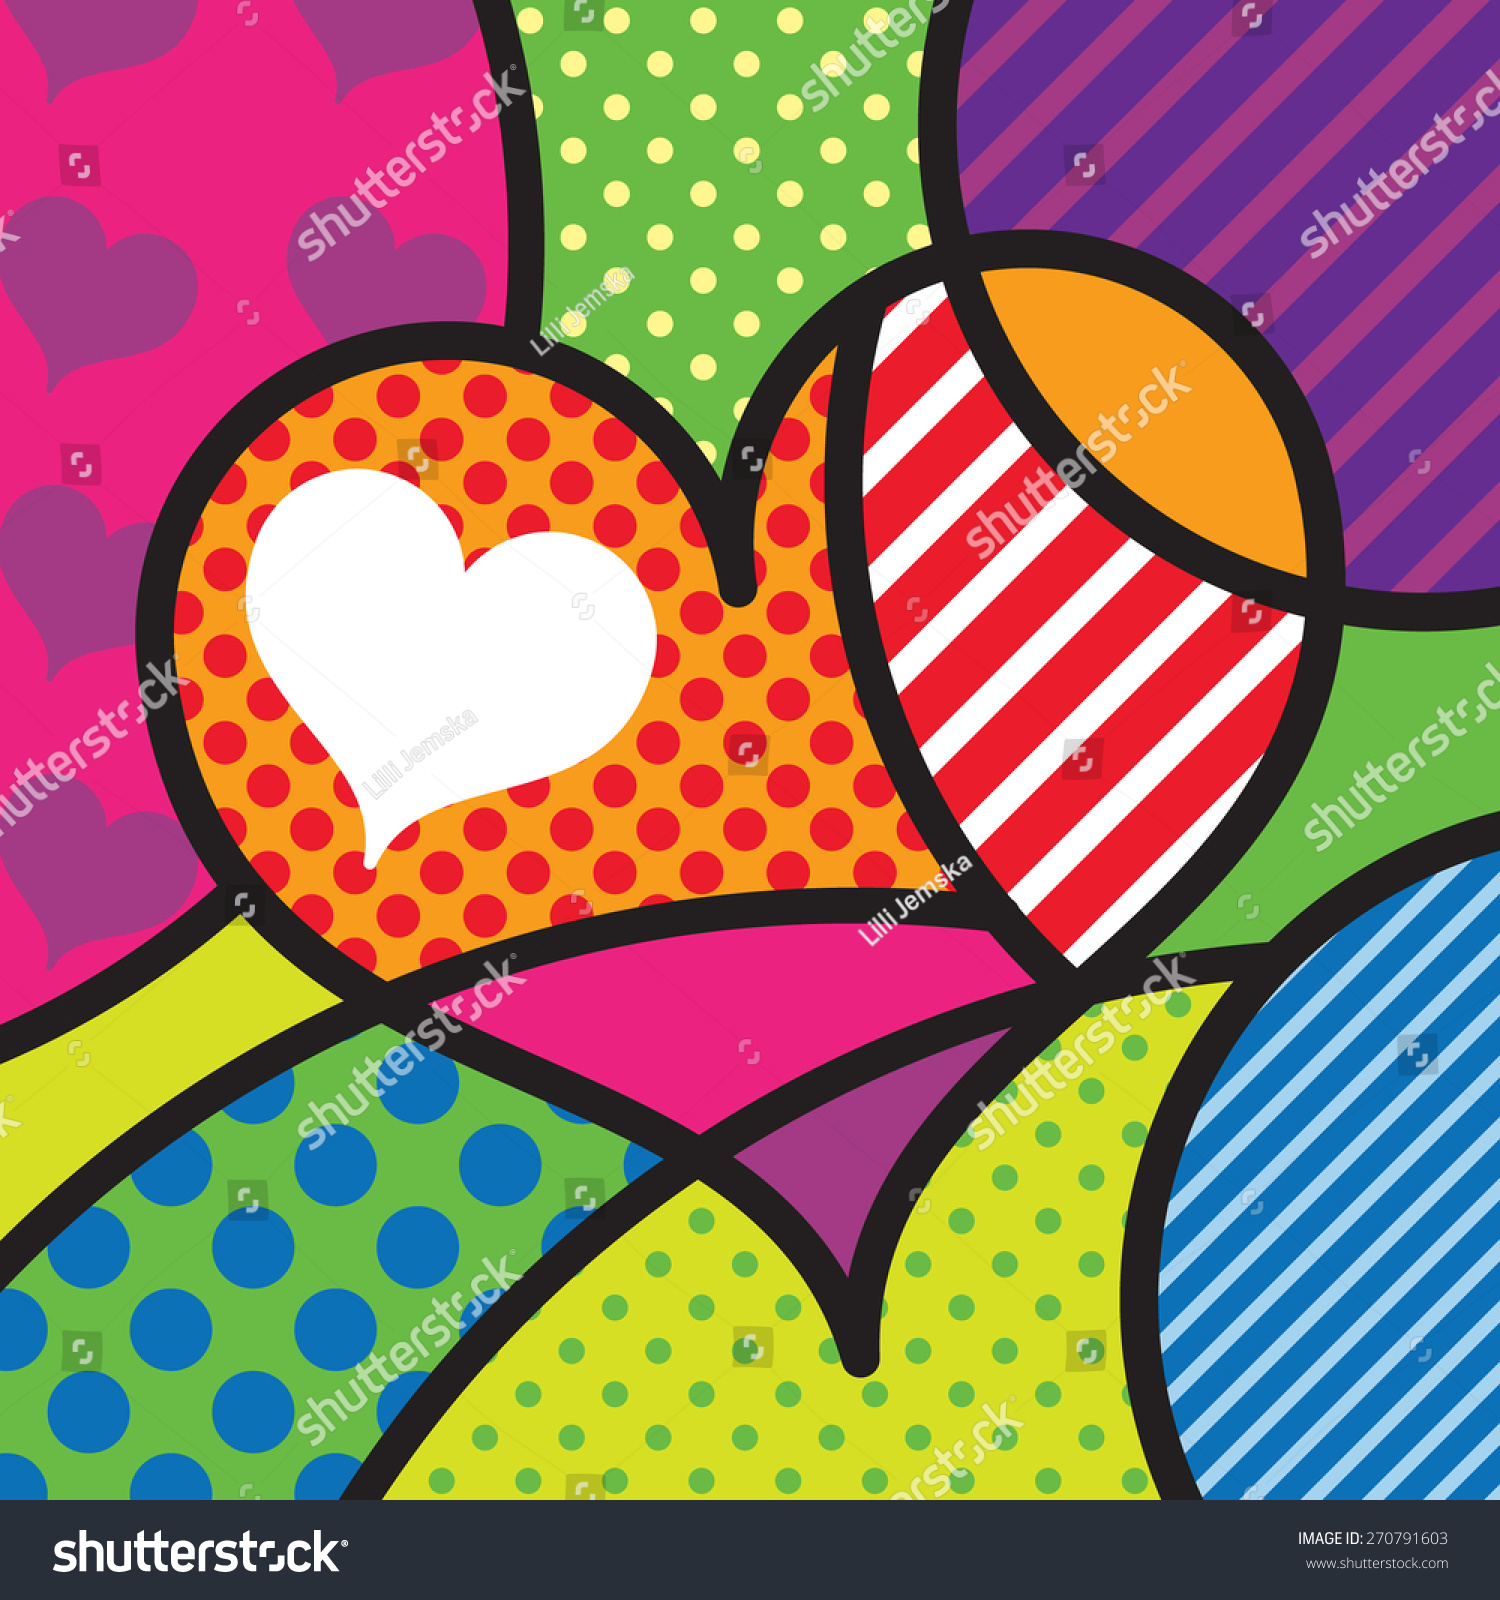 Heart Shape Love Sexy Modern Pop Art Artwork For Your Design Stock Vector 270791603